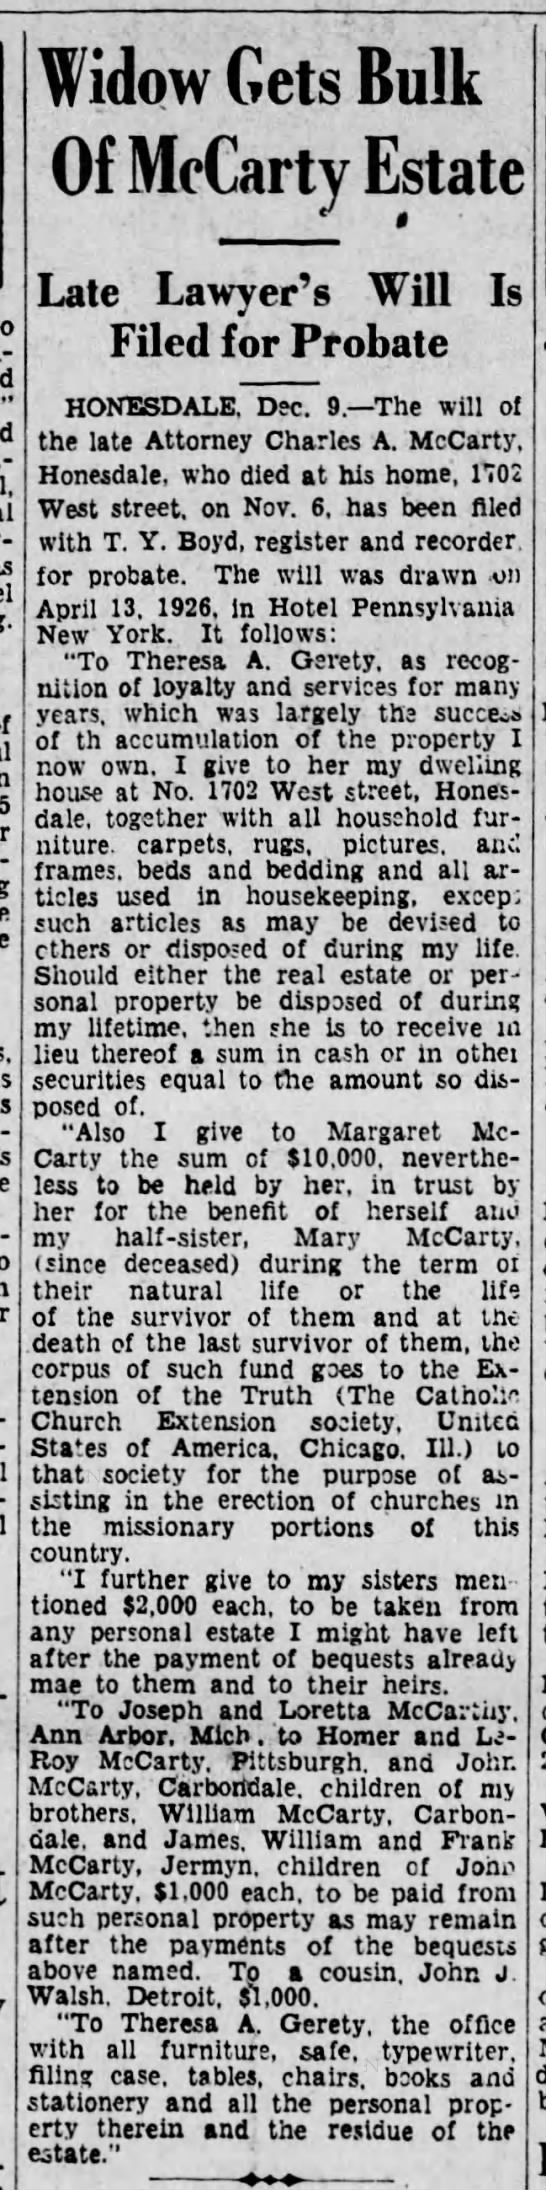 Charles A McCarty Will Published Scrn Rep 12-10-1931 pg 10 - - Widow Gets Bulk Of McCarty Estate Late...